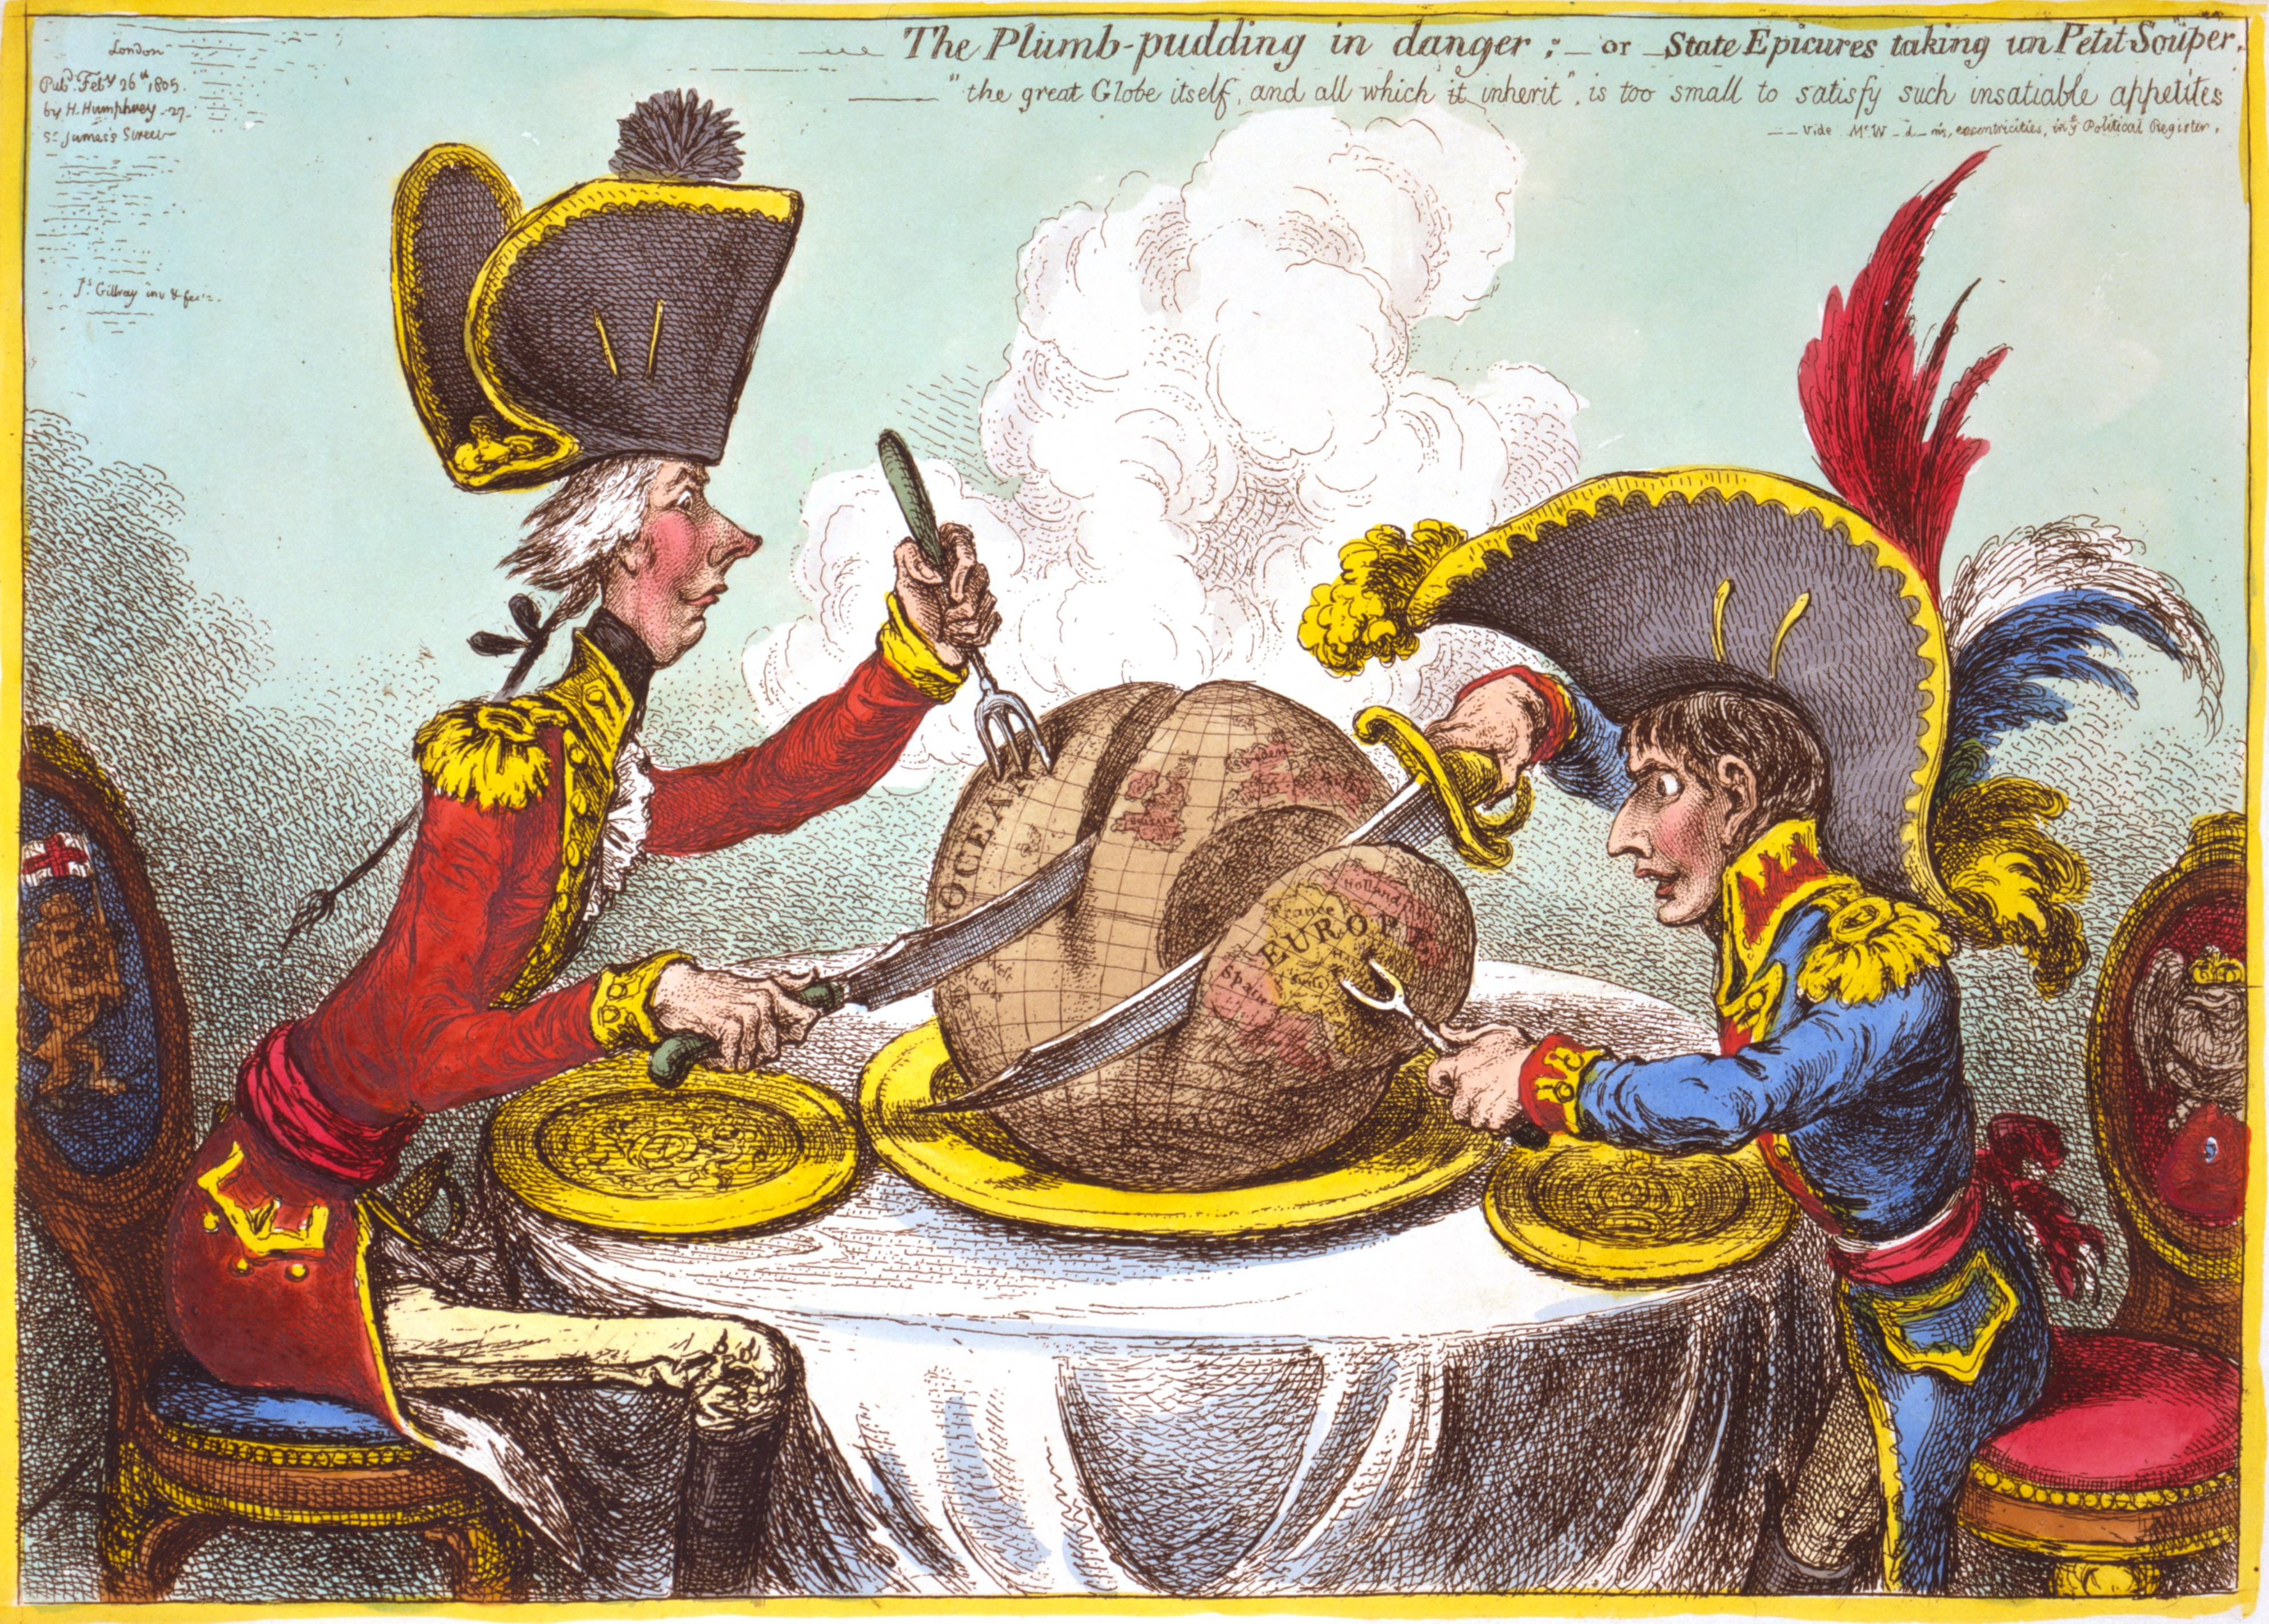 James Gillray, The Plumb-pudding in danger